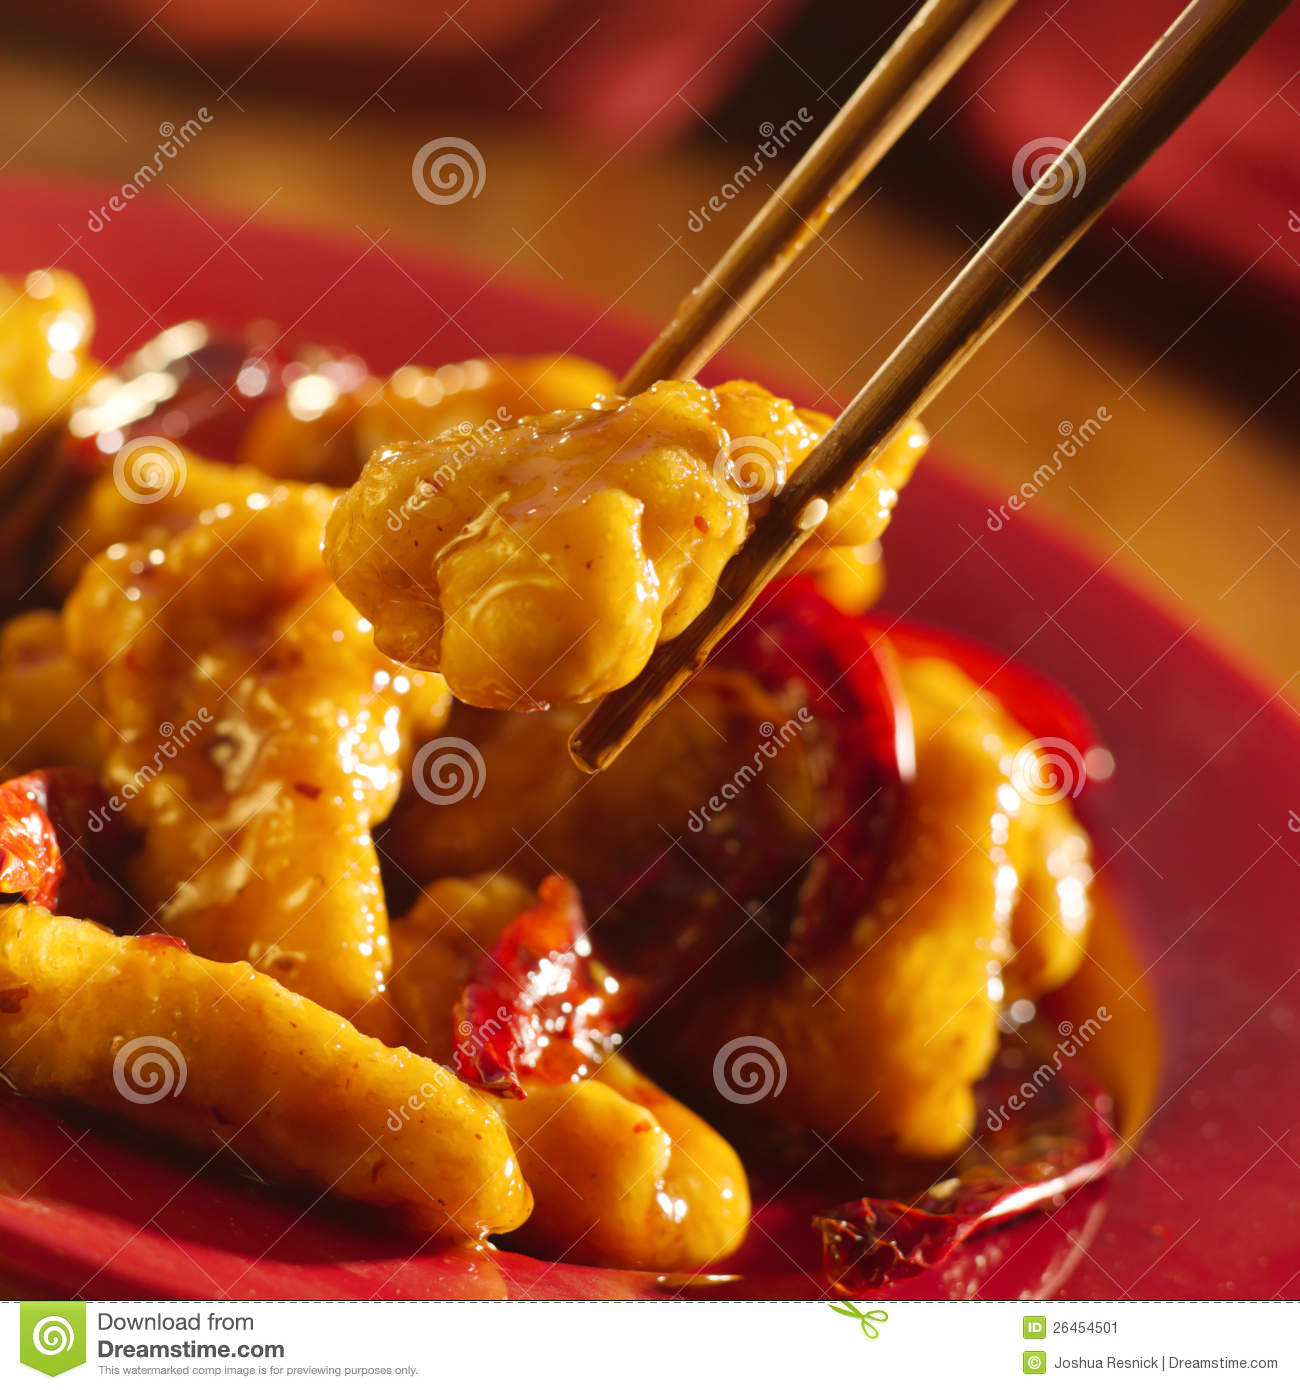 Chinese food - Eating general tso s chicken with c